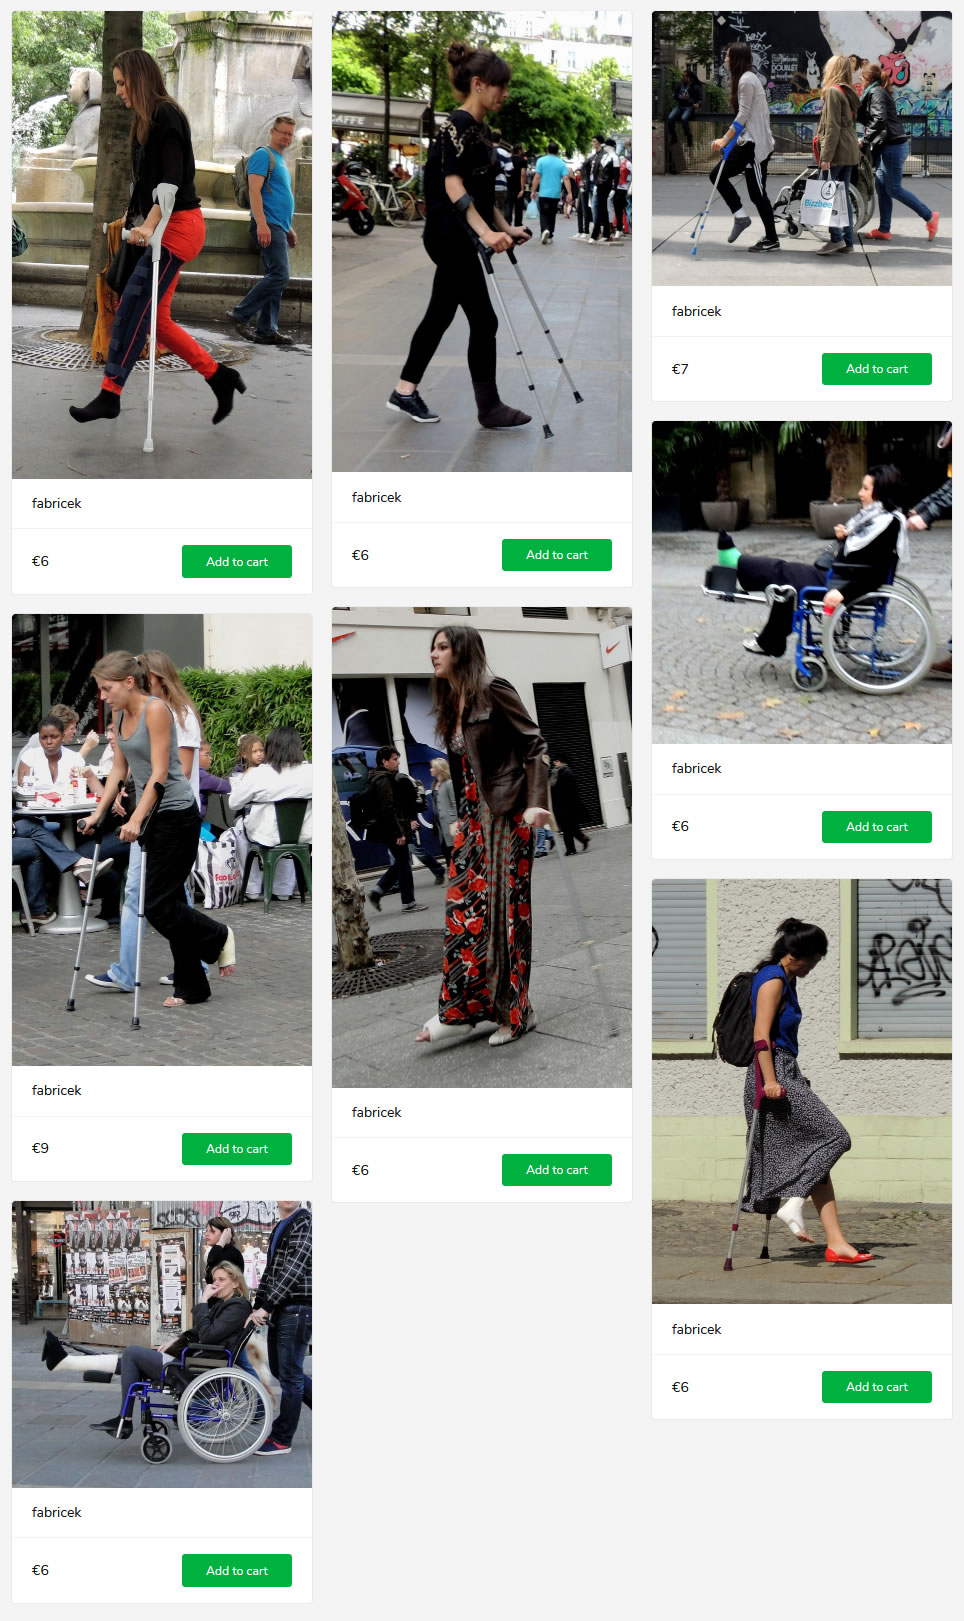 8 new sets of women and gals with plastered legs - on crutches, in wheelchair. some with socks over their casts...